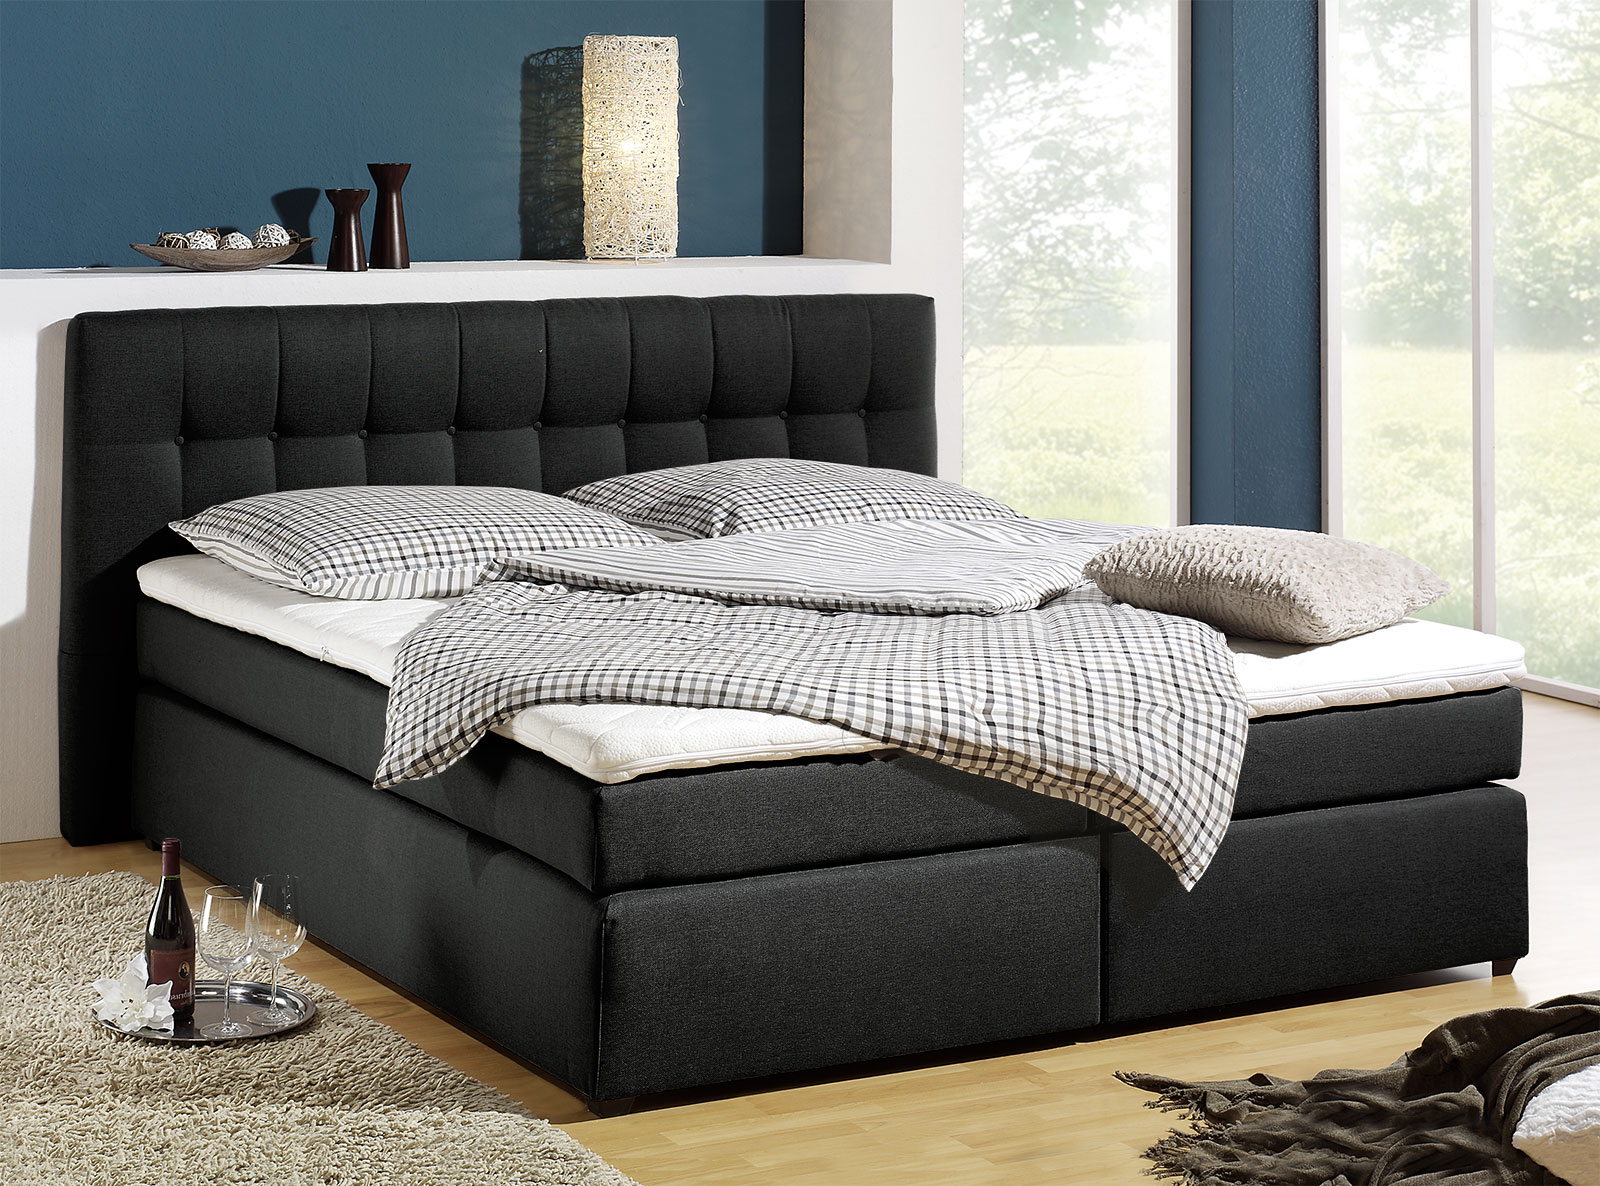 boxspringbett in h3 bis 120kg k rpergewicht chicago. Black Bedroom Furniture Sets. Home Design Ideas